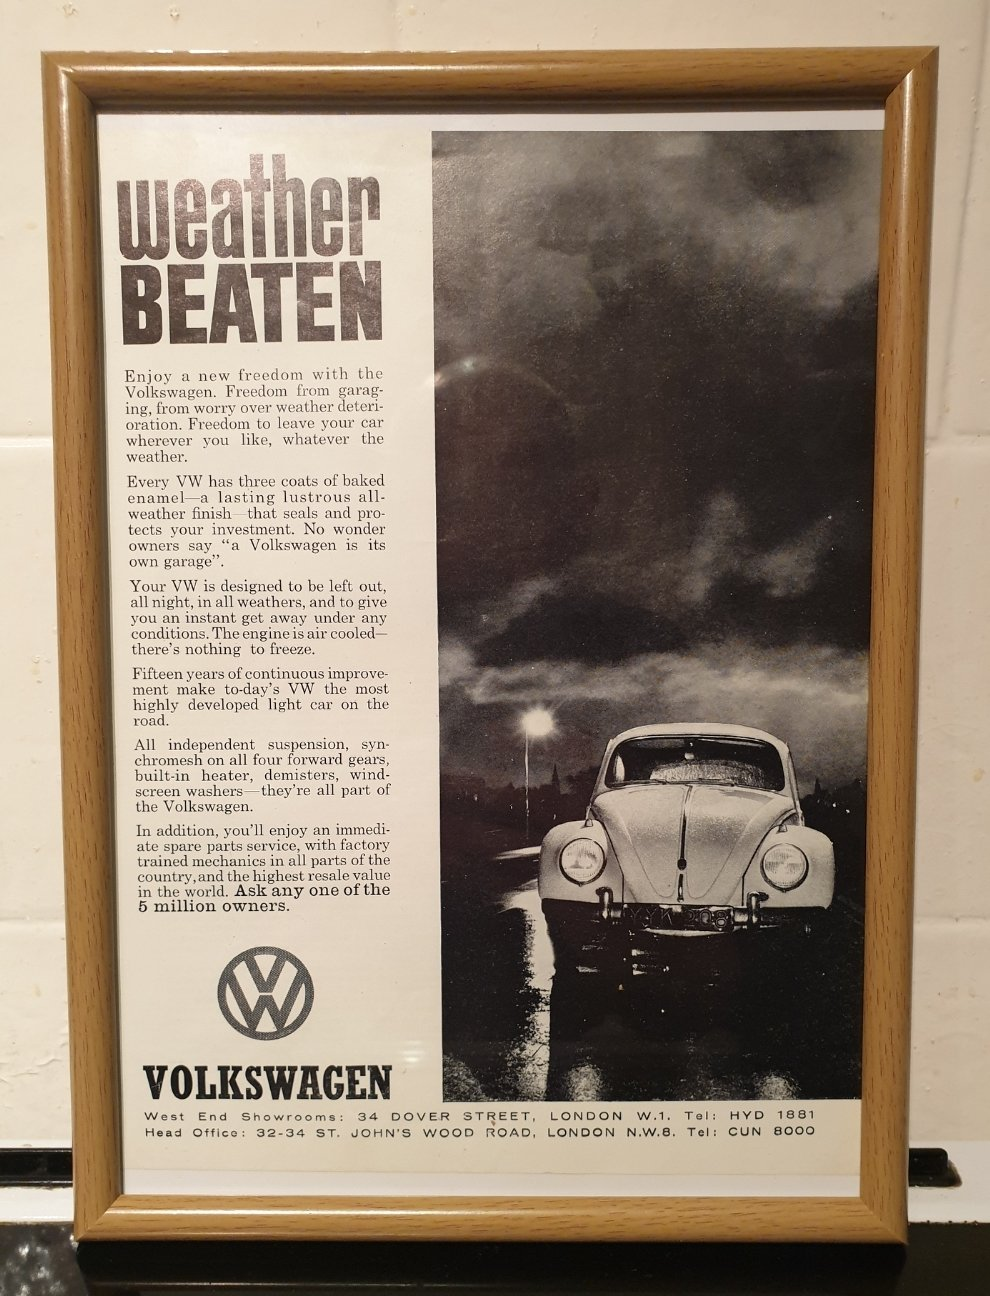 1962 VW Beetle Framed Advert Original  For Sale (picture 1 of 2)